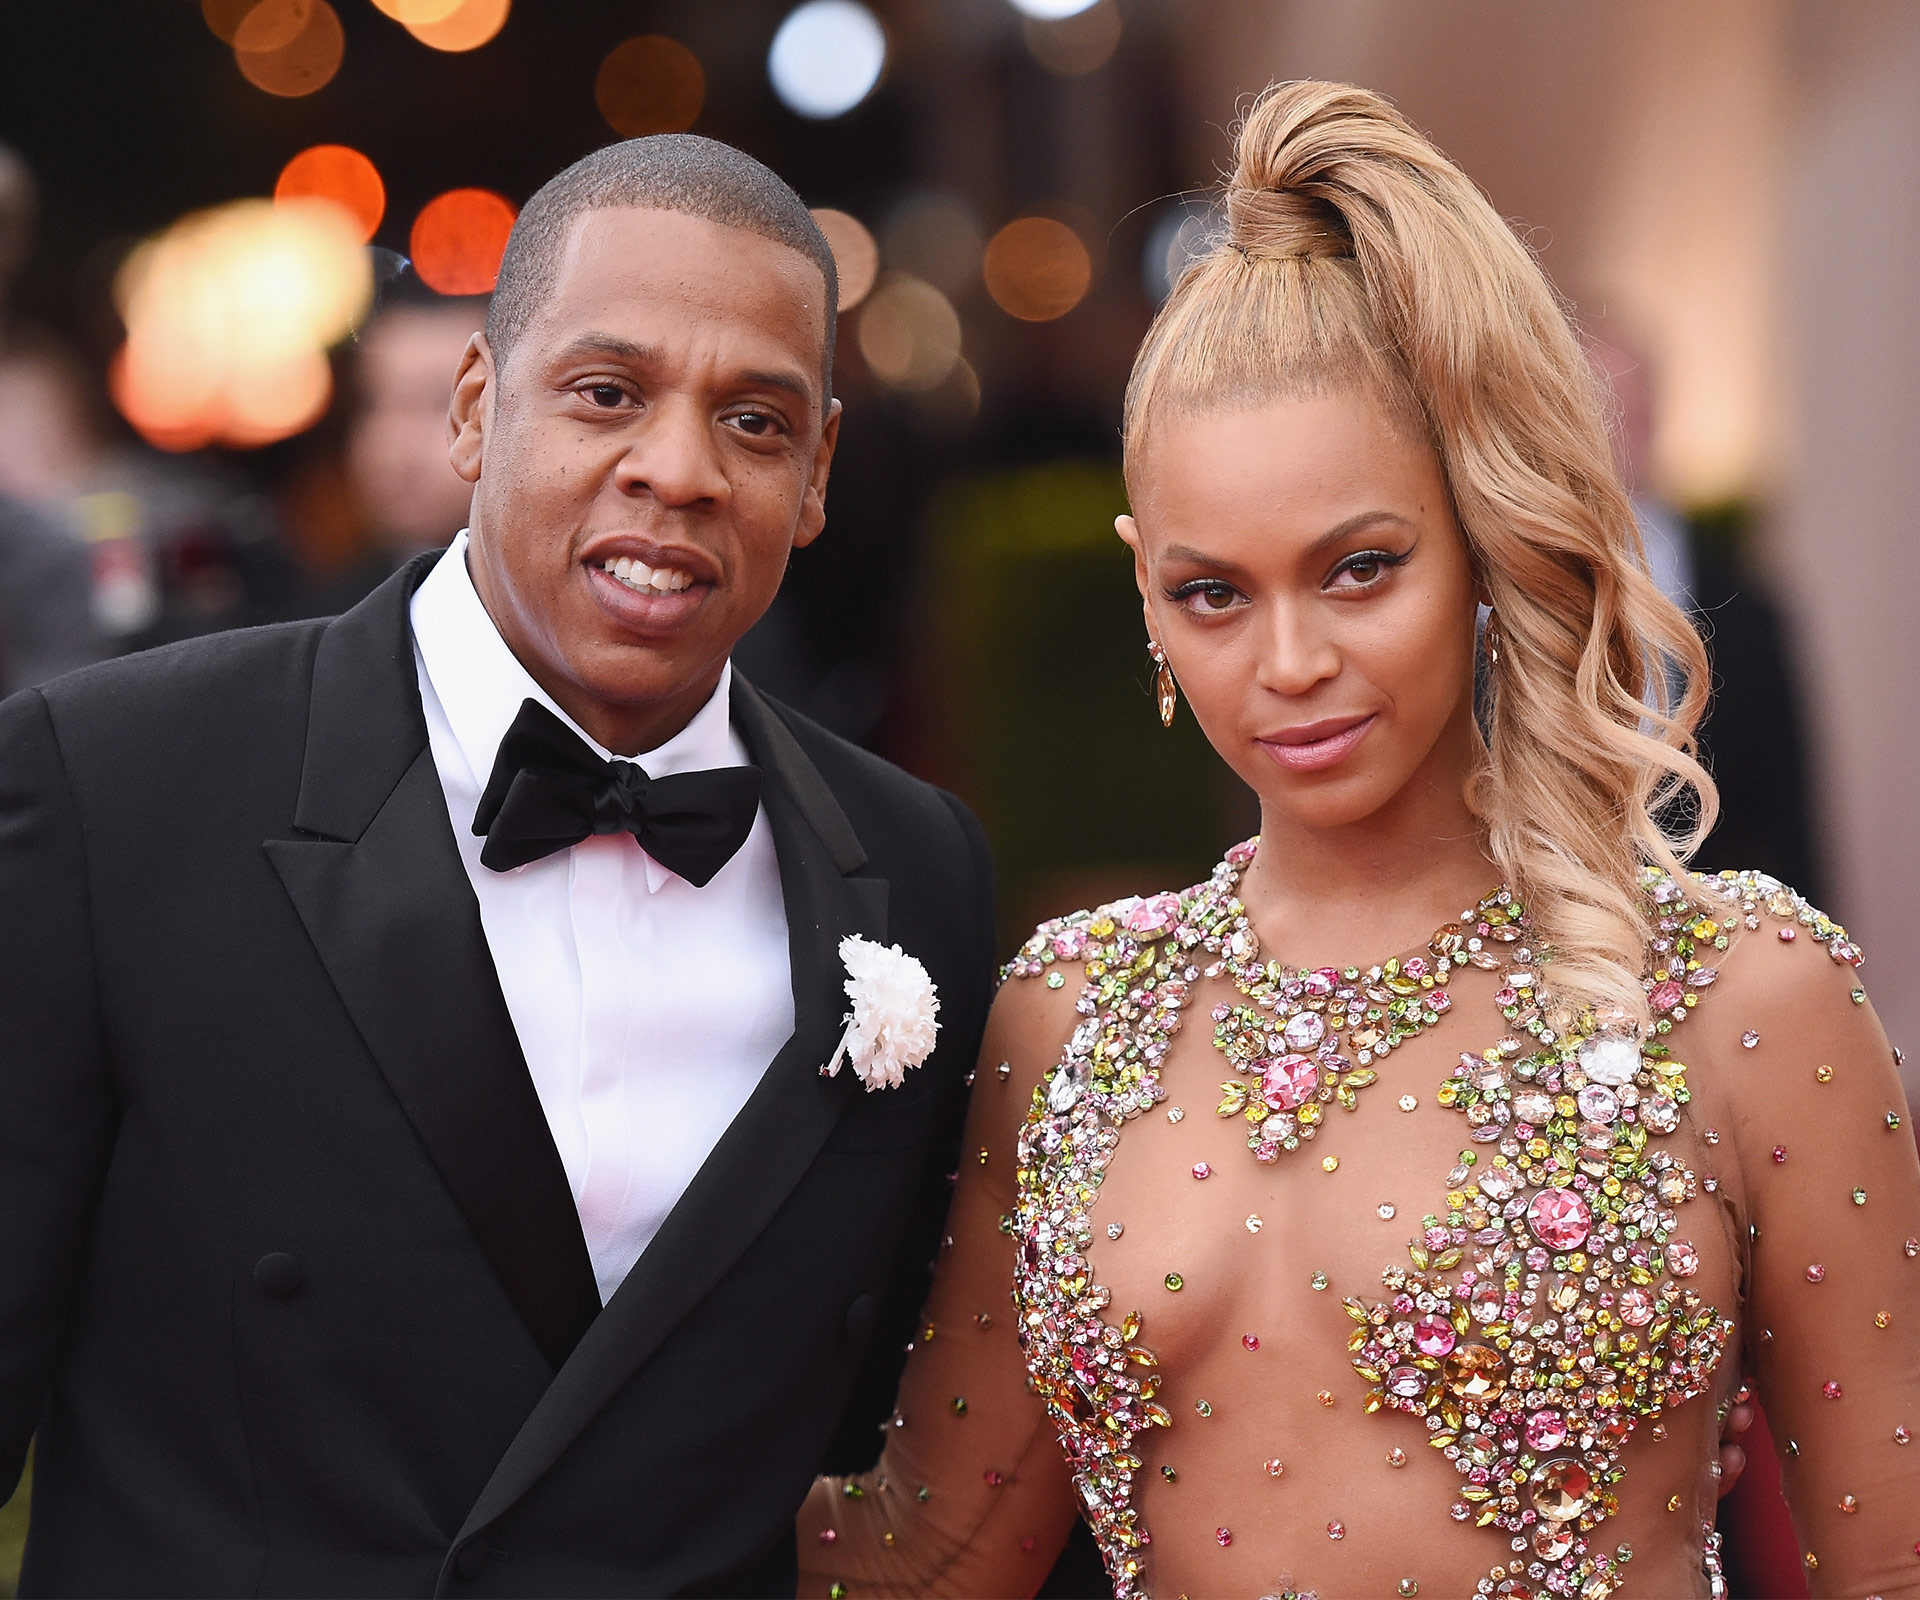 Sir Carter and Rumi pictured for first time — Beyonce